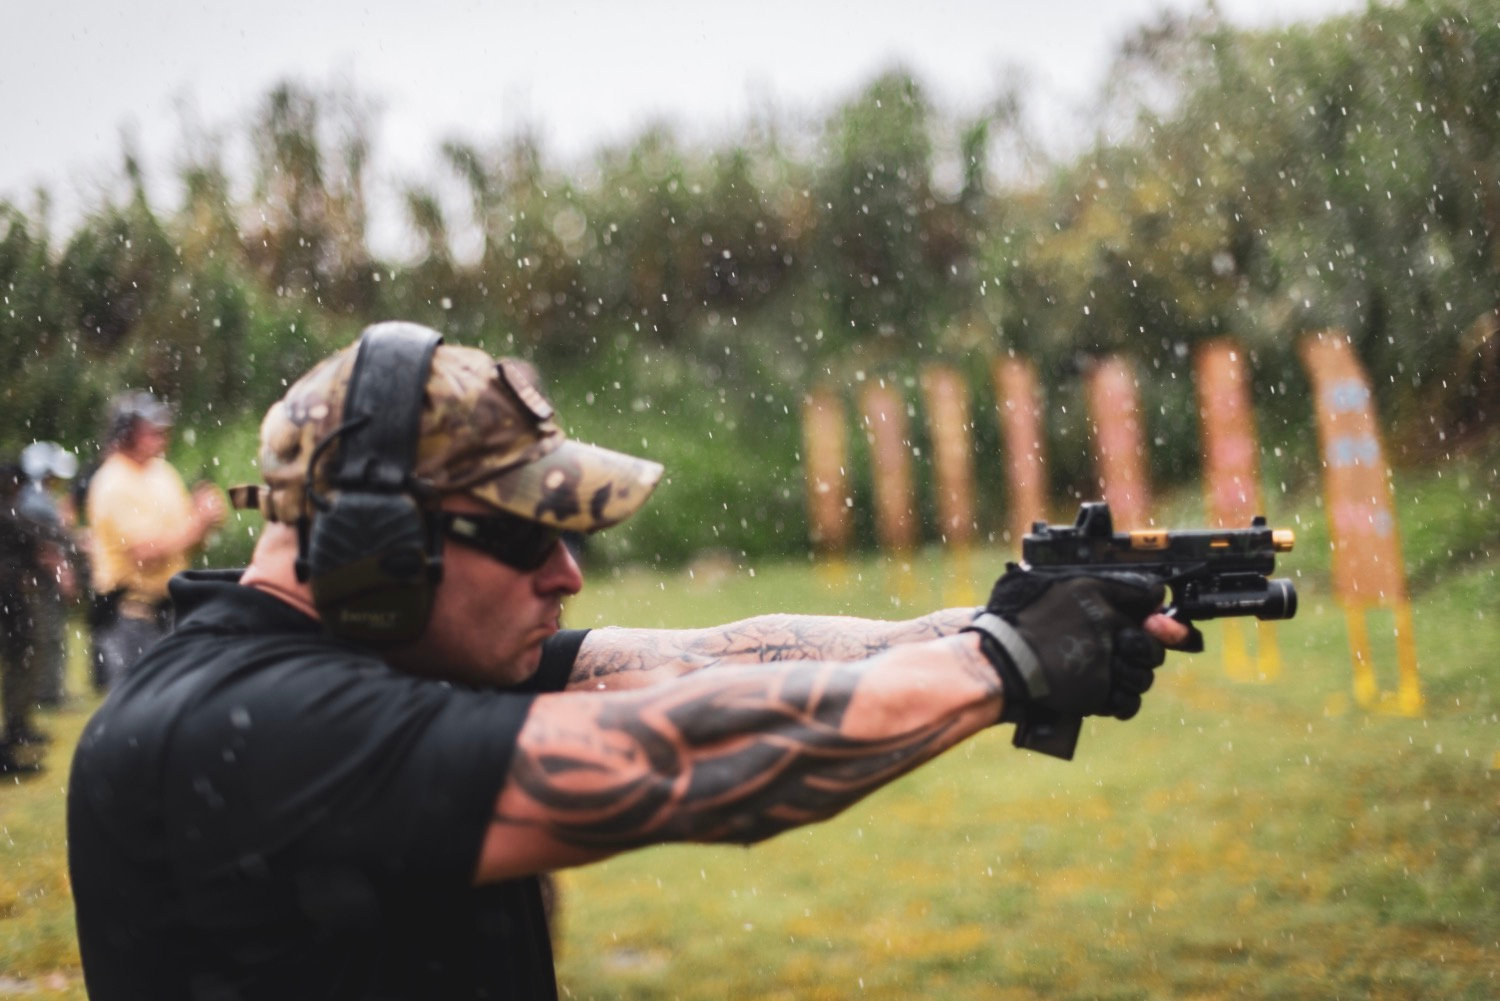 CONCEALED CARRY GUNFIGHTER